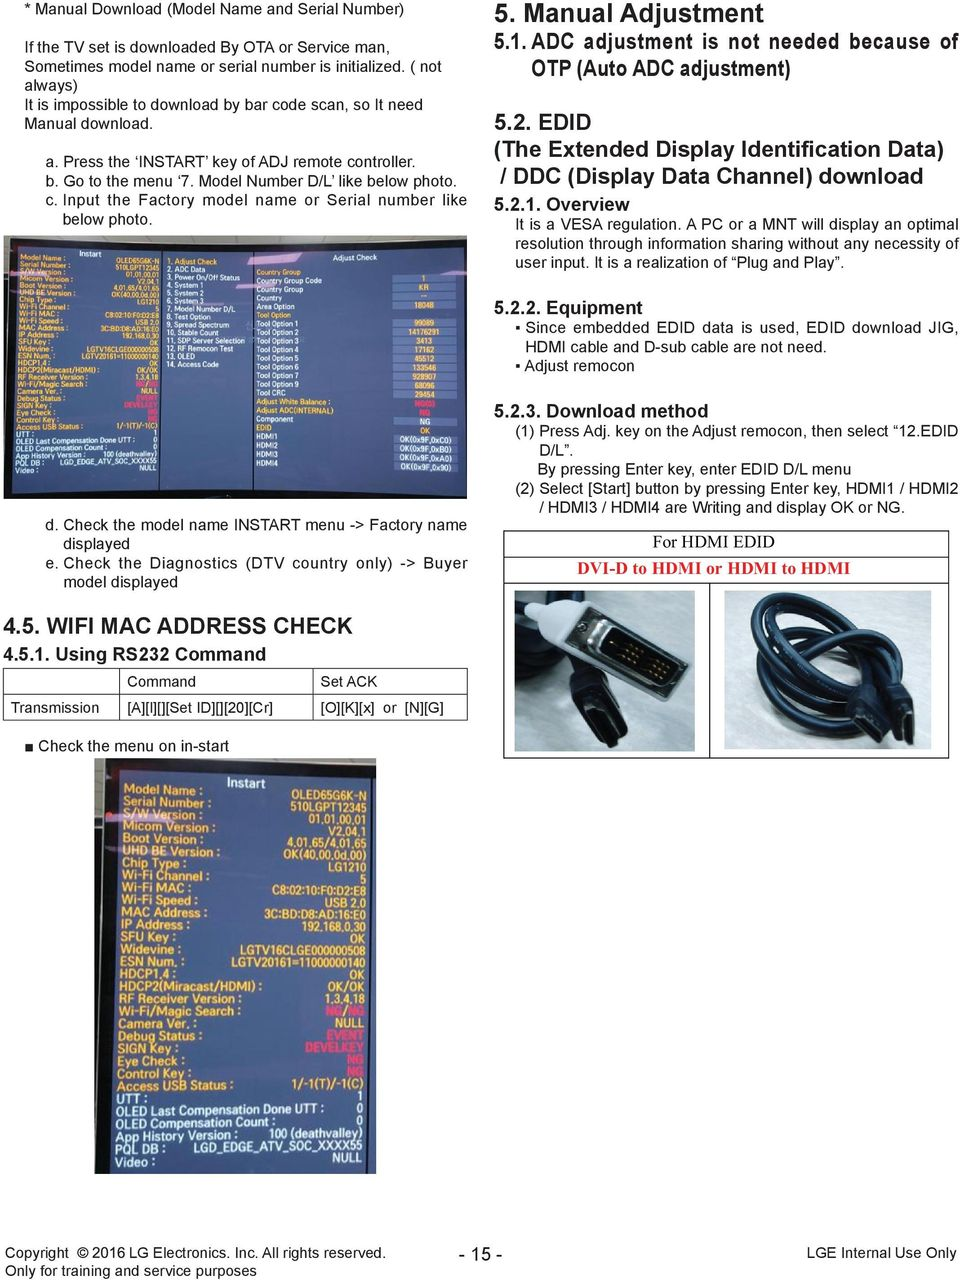 Oled Tv Service Manual Pdf General Plasma Adjustment Adc Is Not Needed Because Of Otp Auto